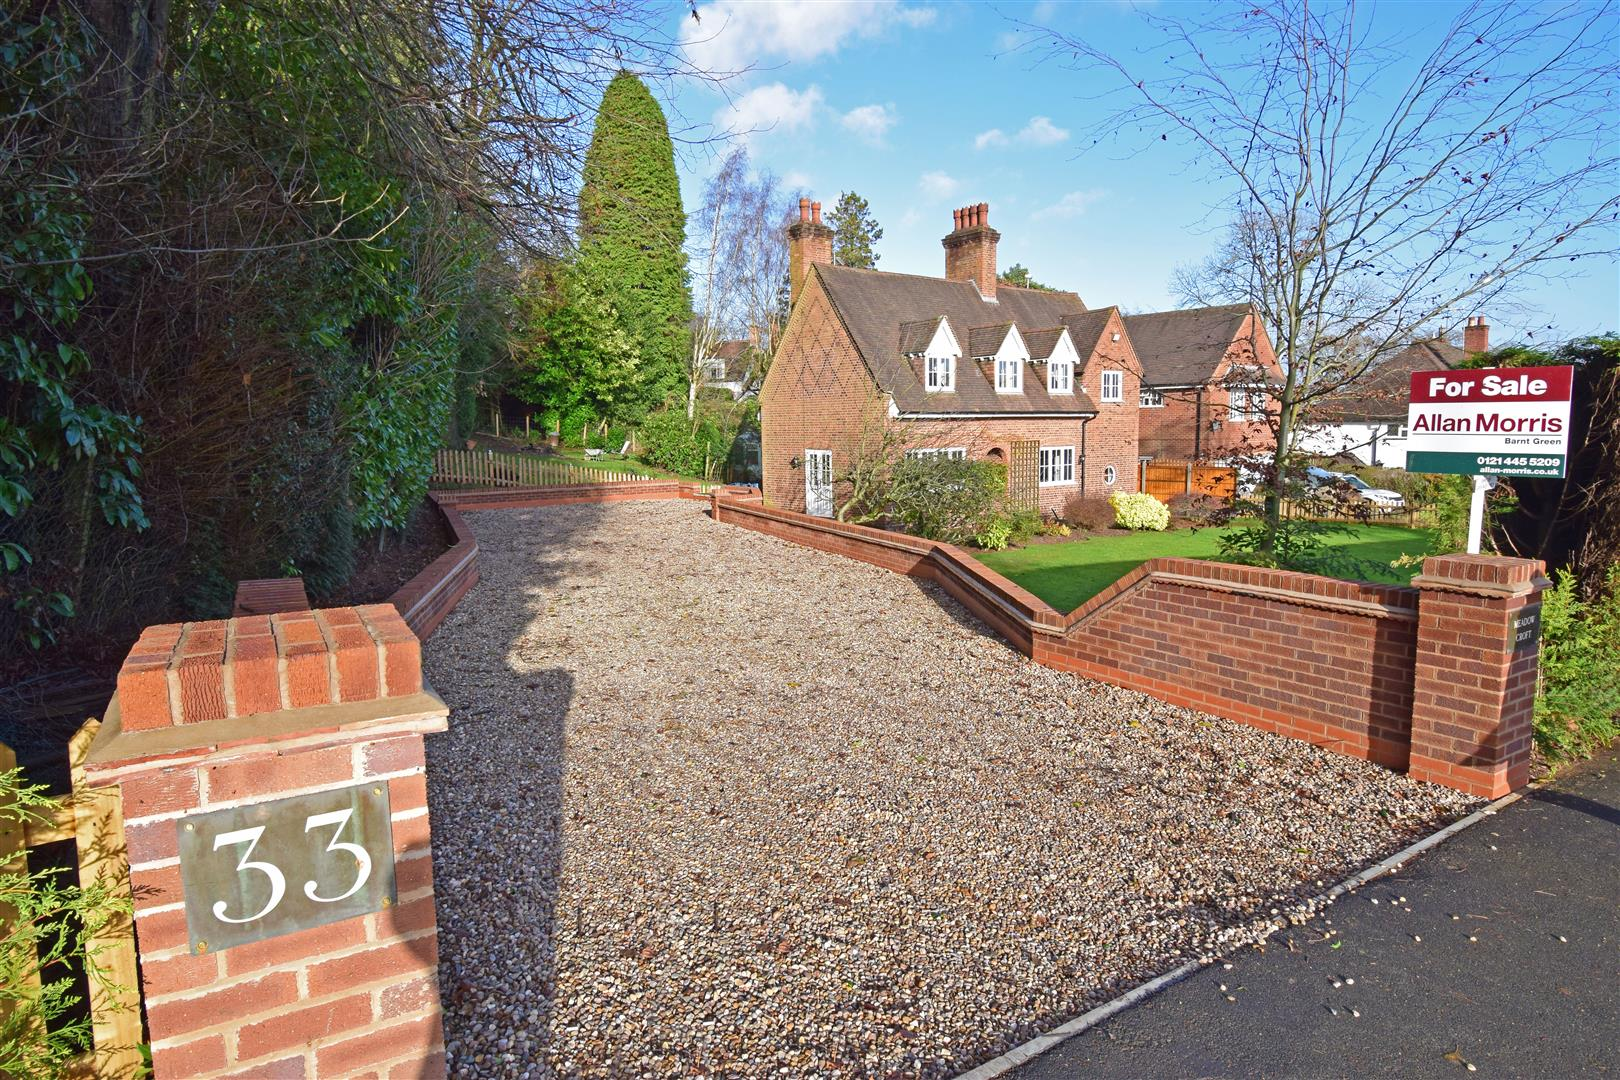 Meadow Croft, 33 Fiery Hill Road, Barnt Green, B45 8LE